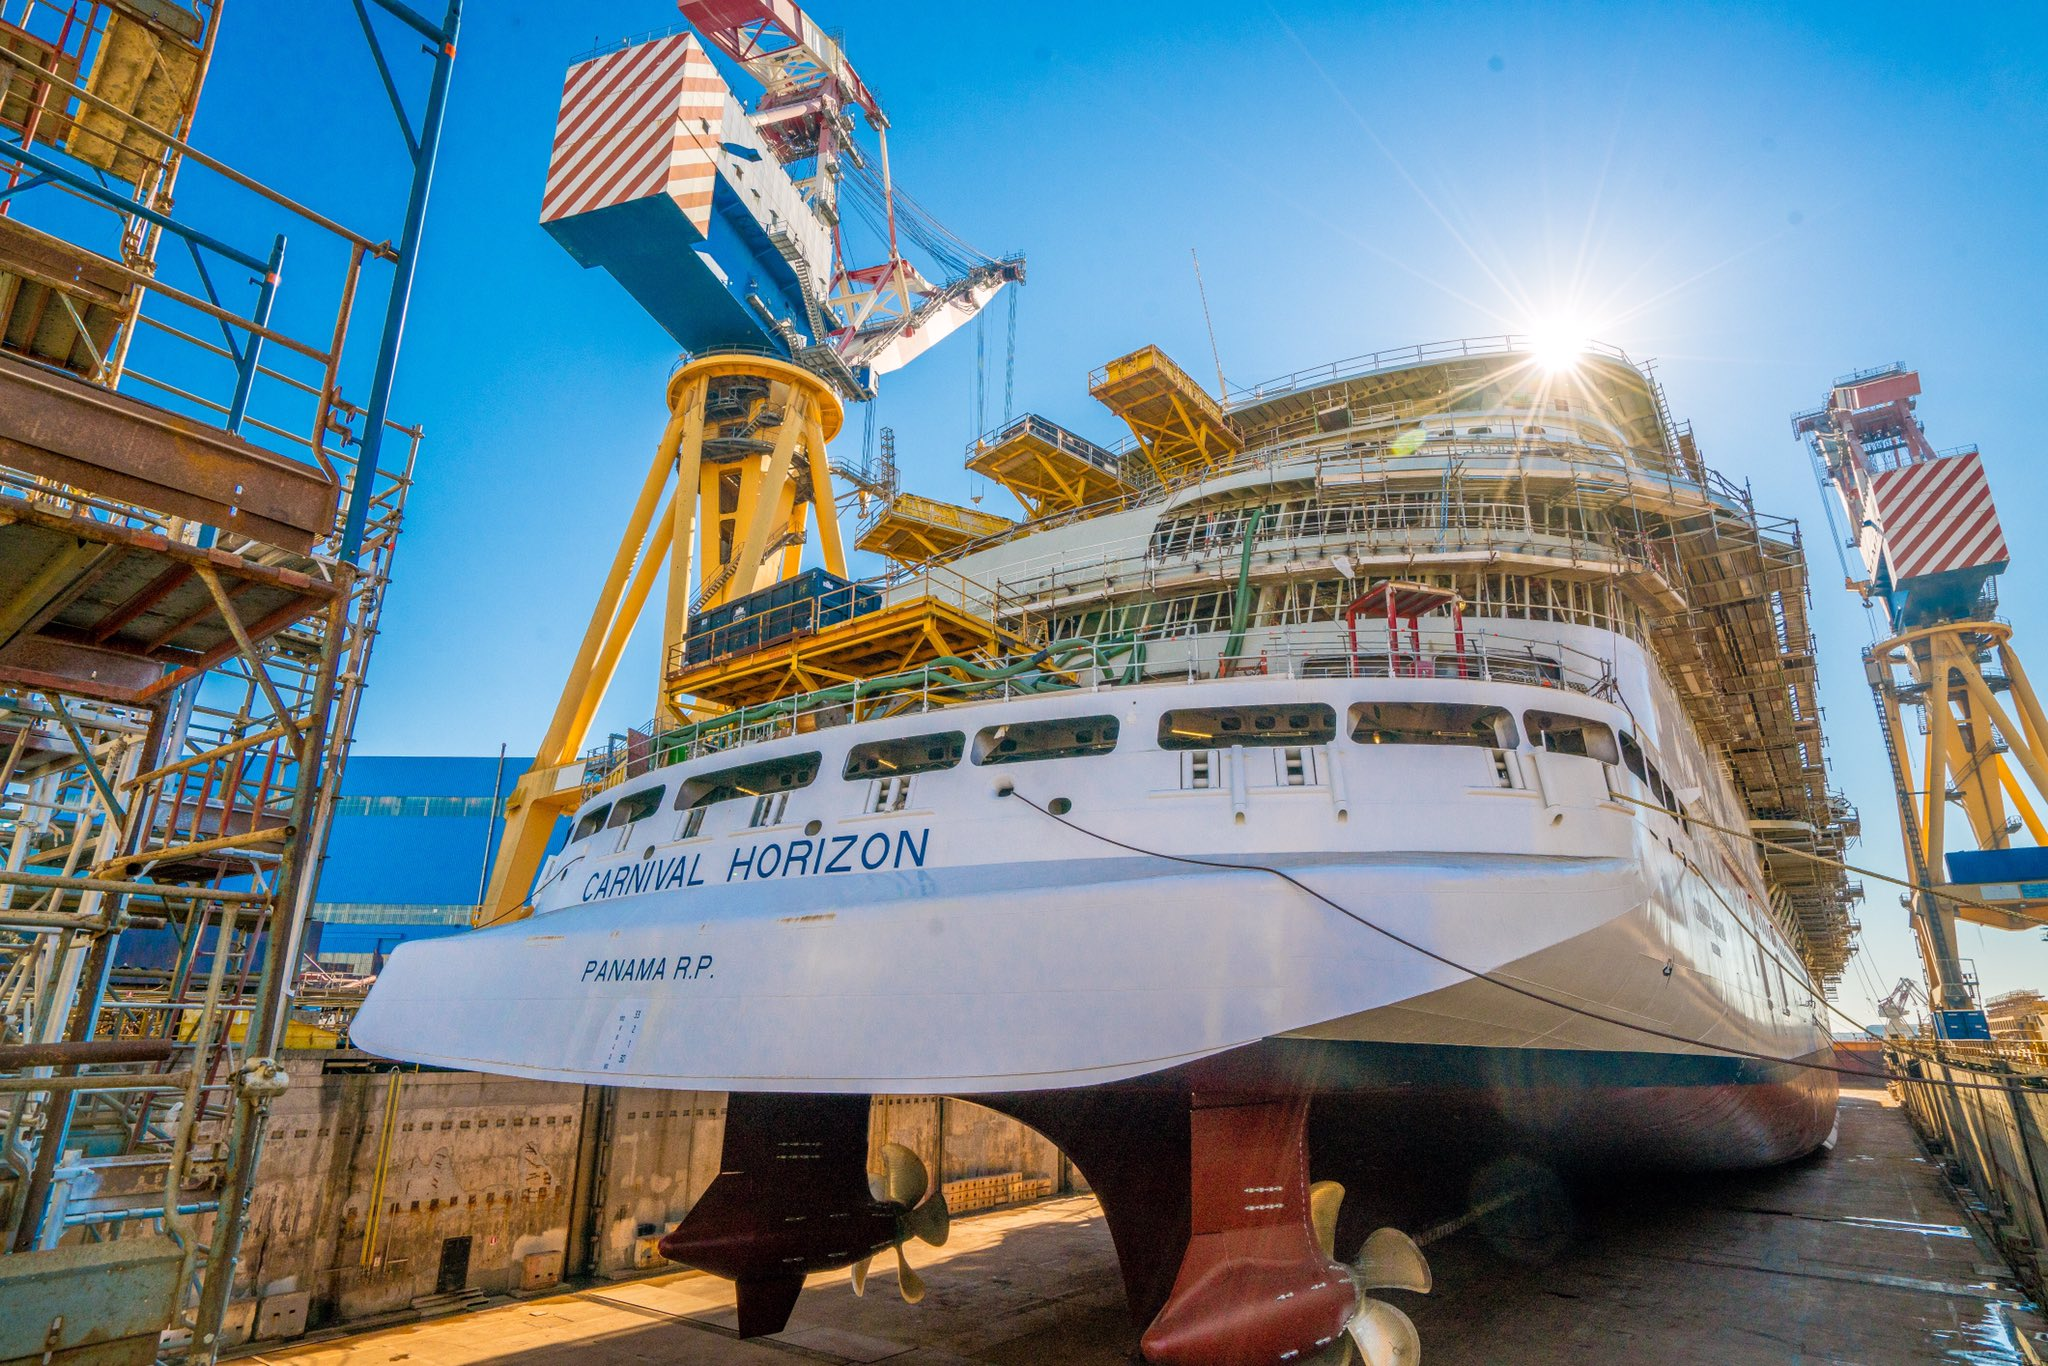 Carnival Horizon Moves To Next Phase Of Construction